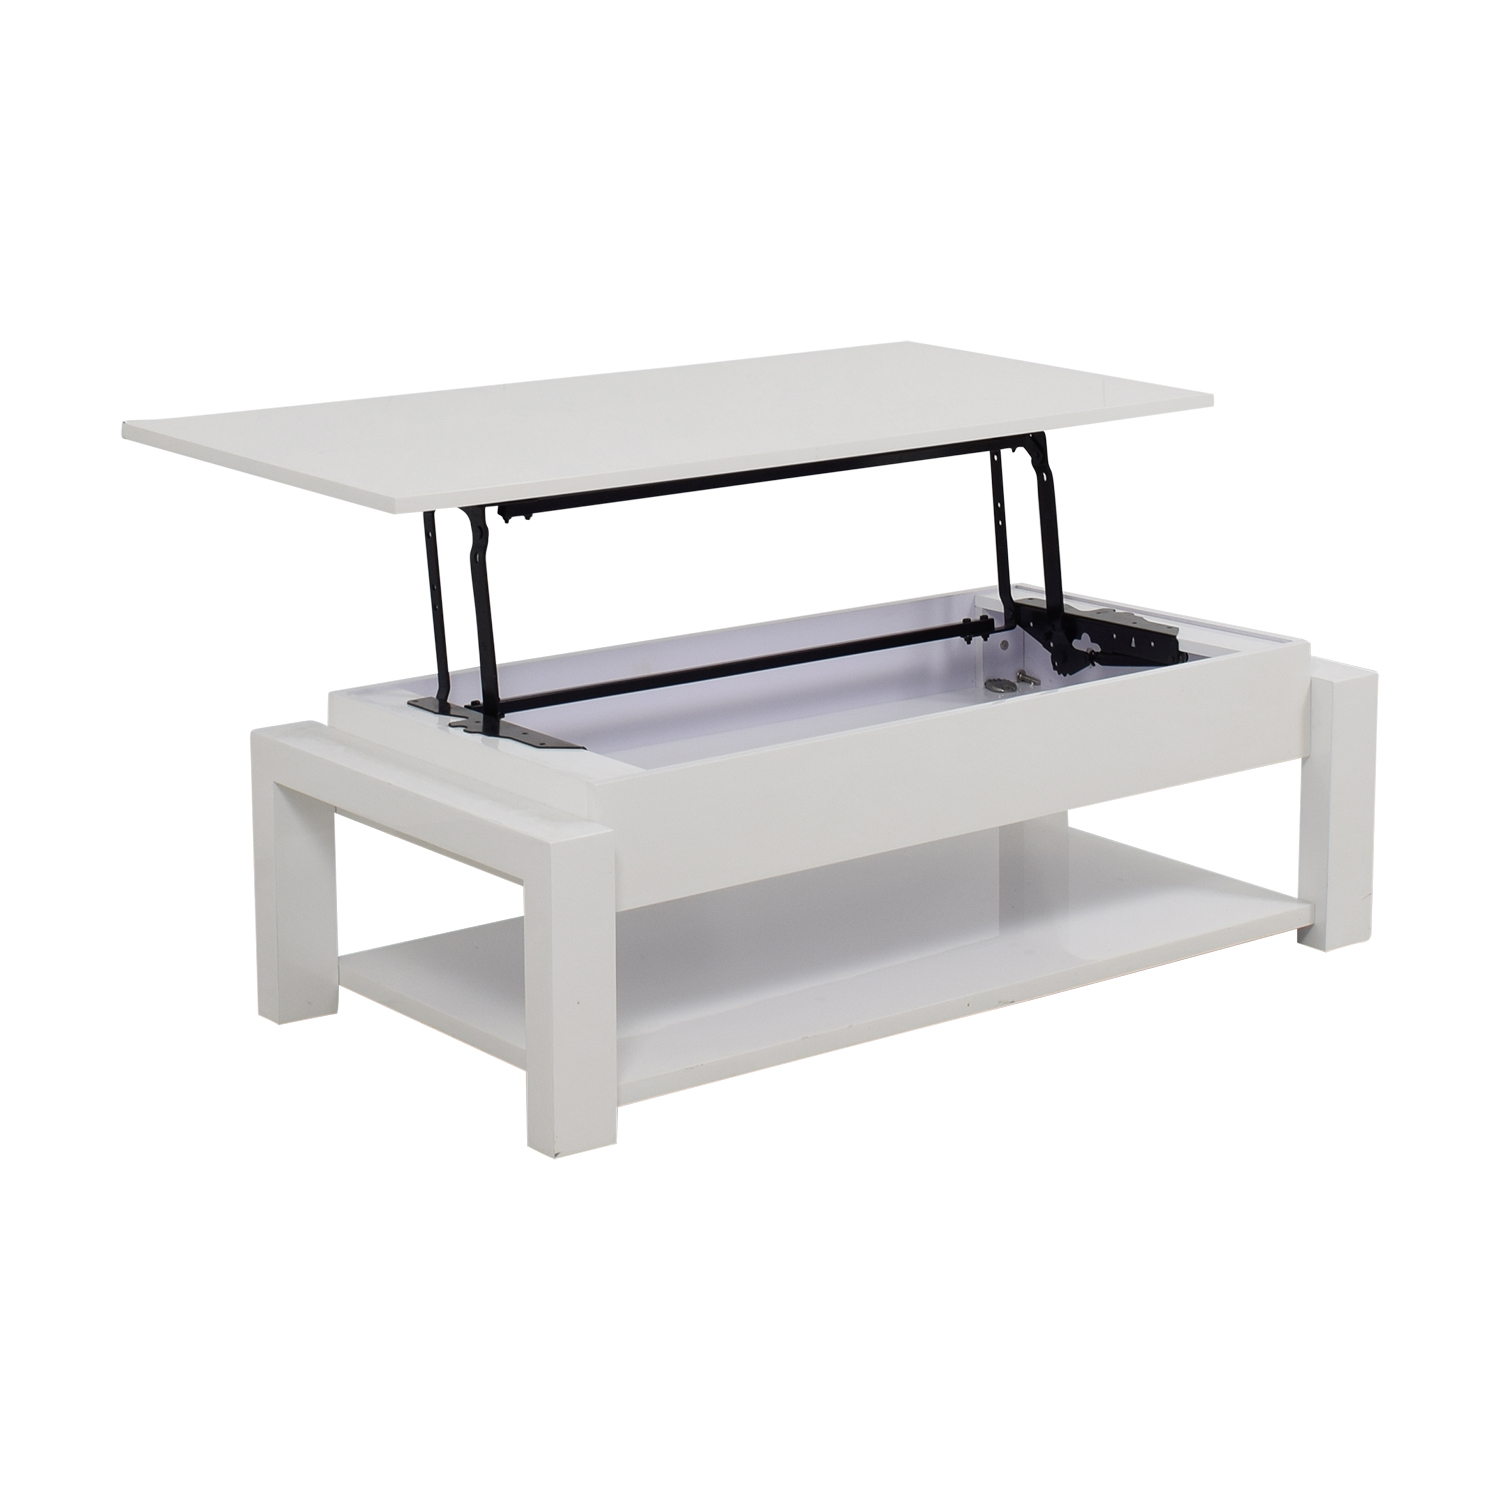 74 off white lift top coffee table tables Lifting top coffee table